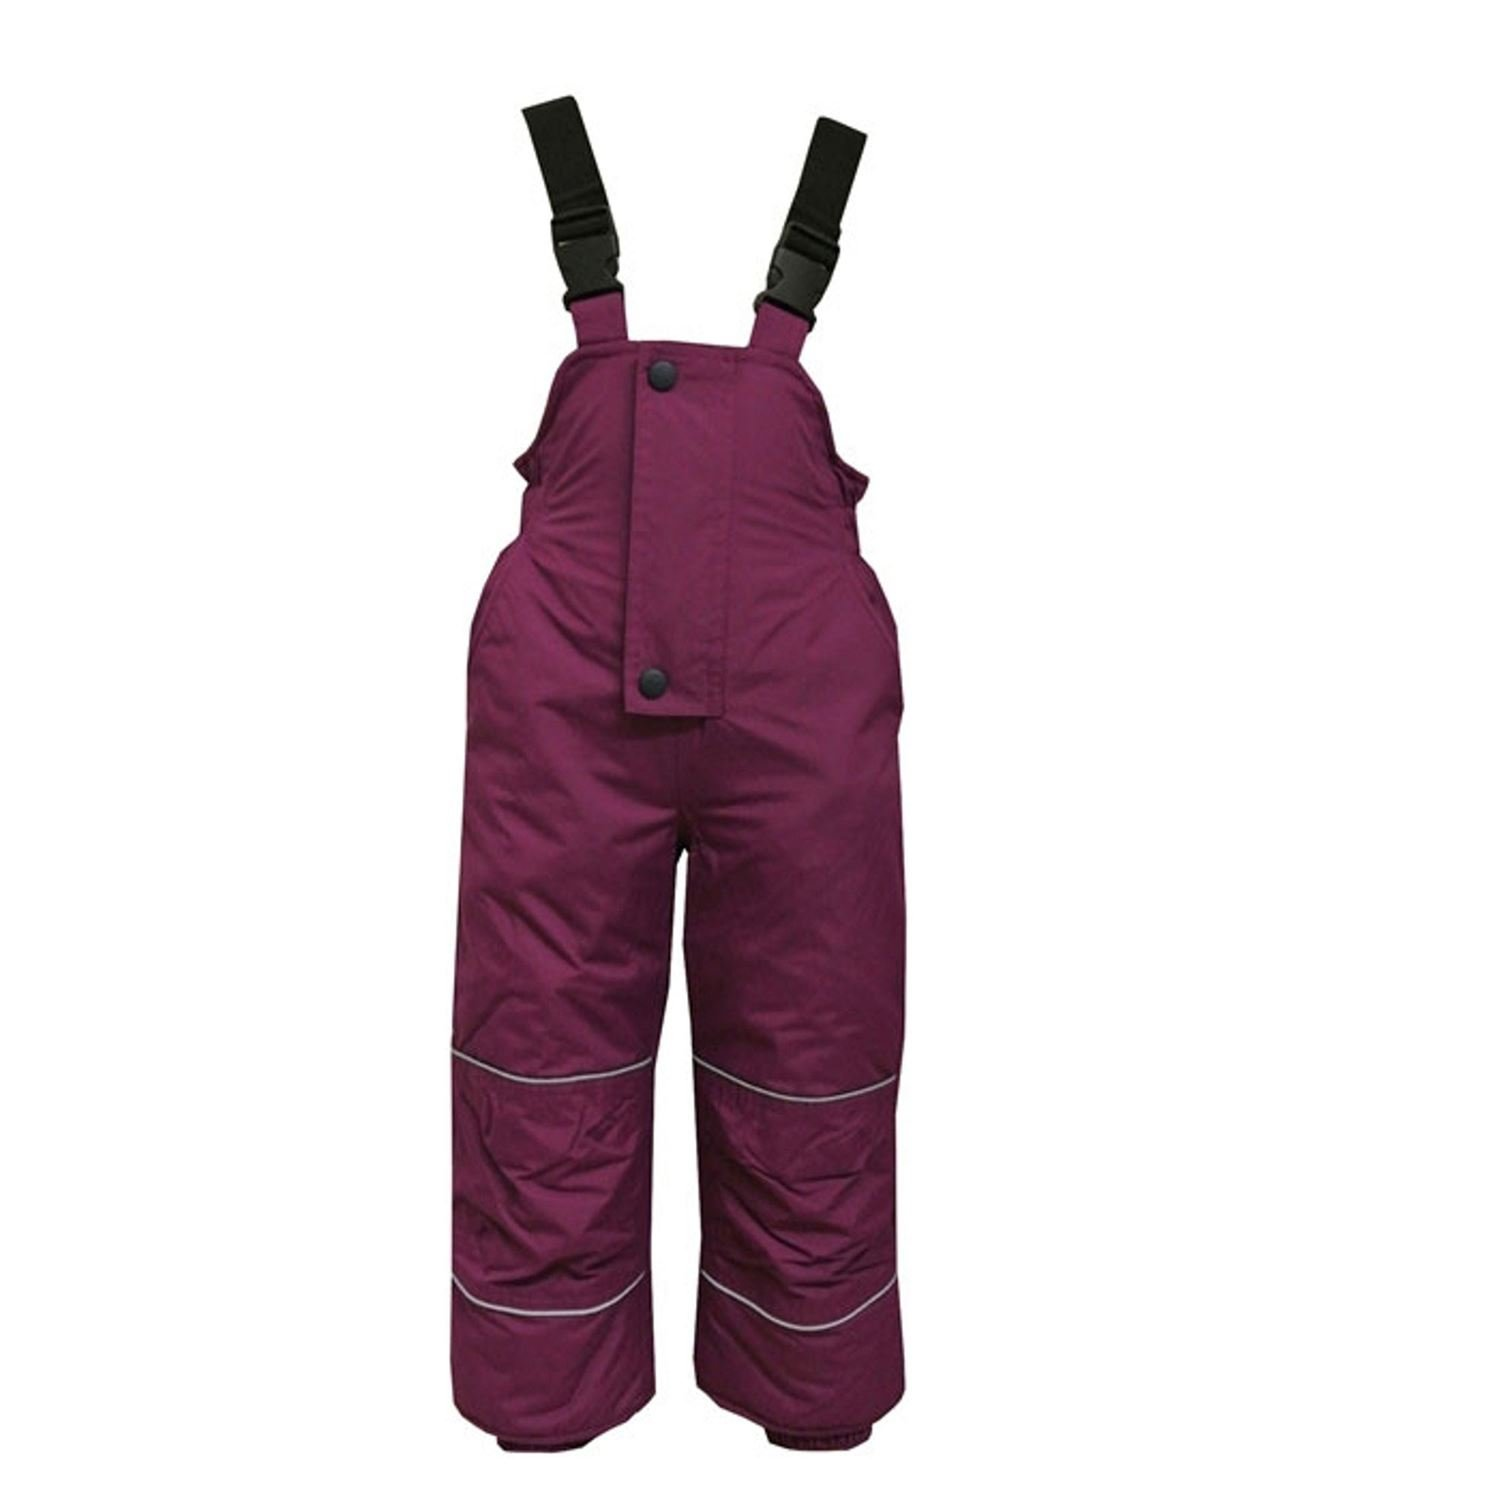 Outburst - Kids Girls Skihose Snowhose Waterproof 10,000 mm water column, blackberry